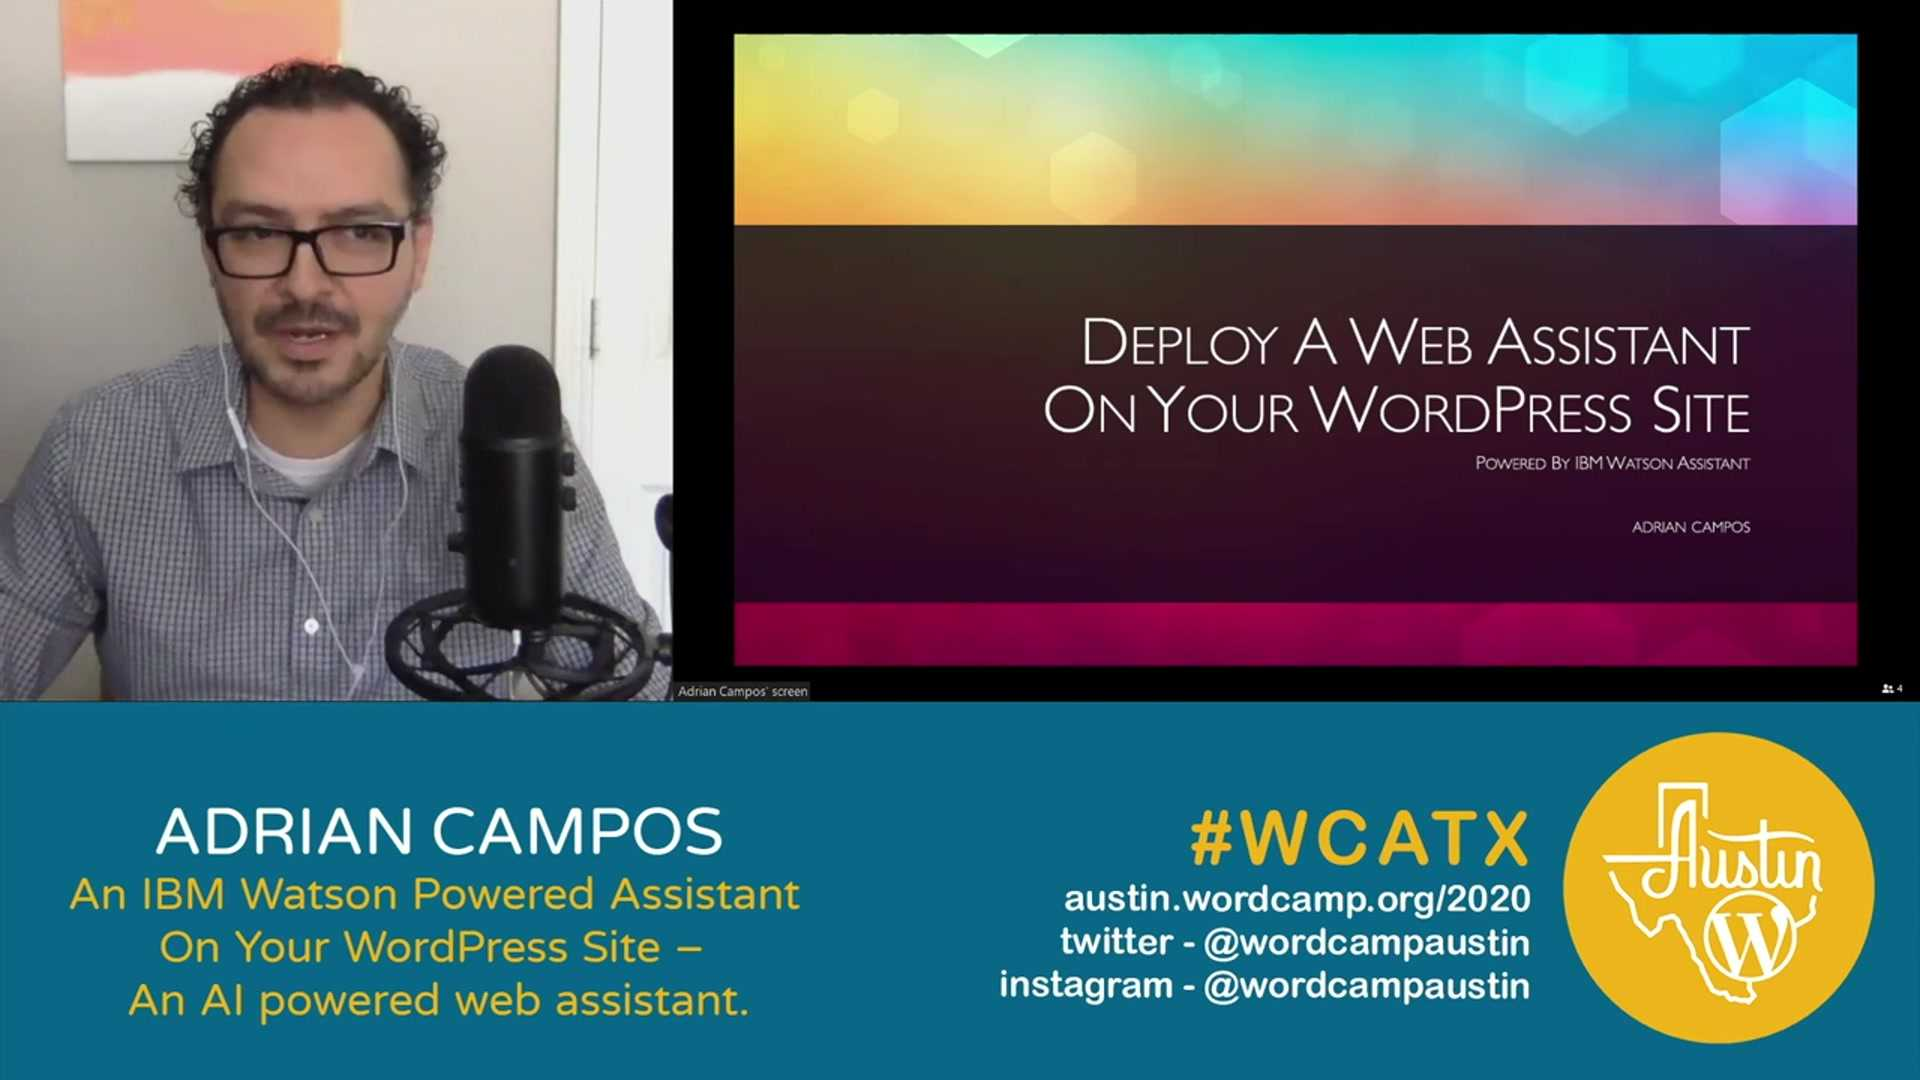 Adrian Campos: An IBM Watson Powered Assistant On Your WordPress Site – An AI powered web assistant